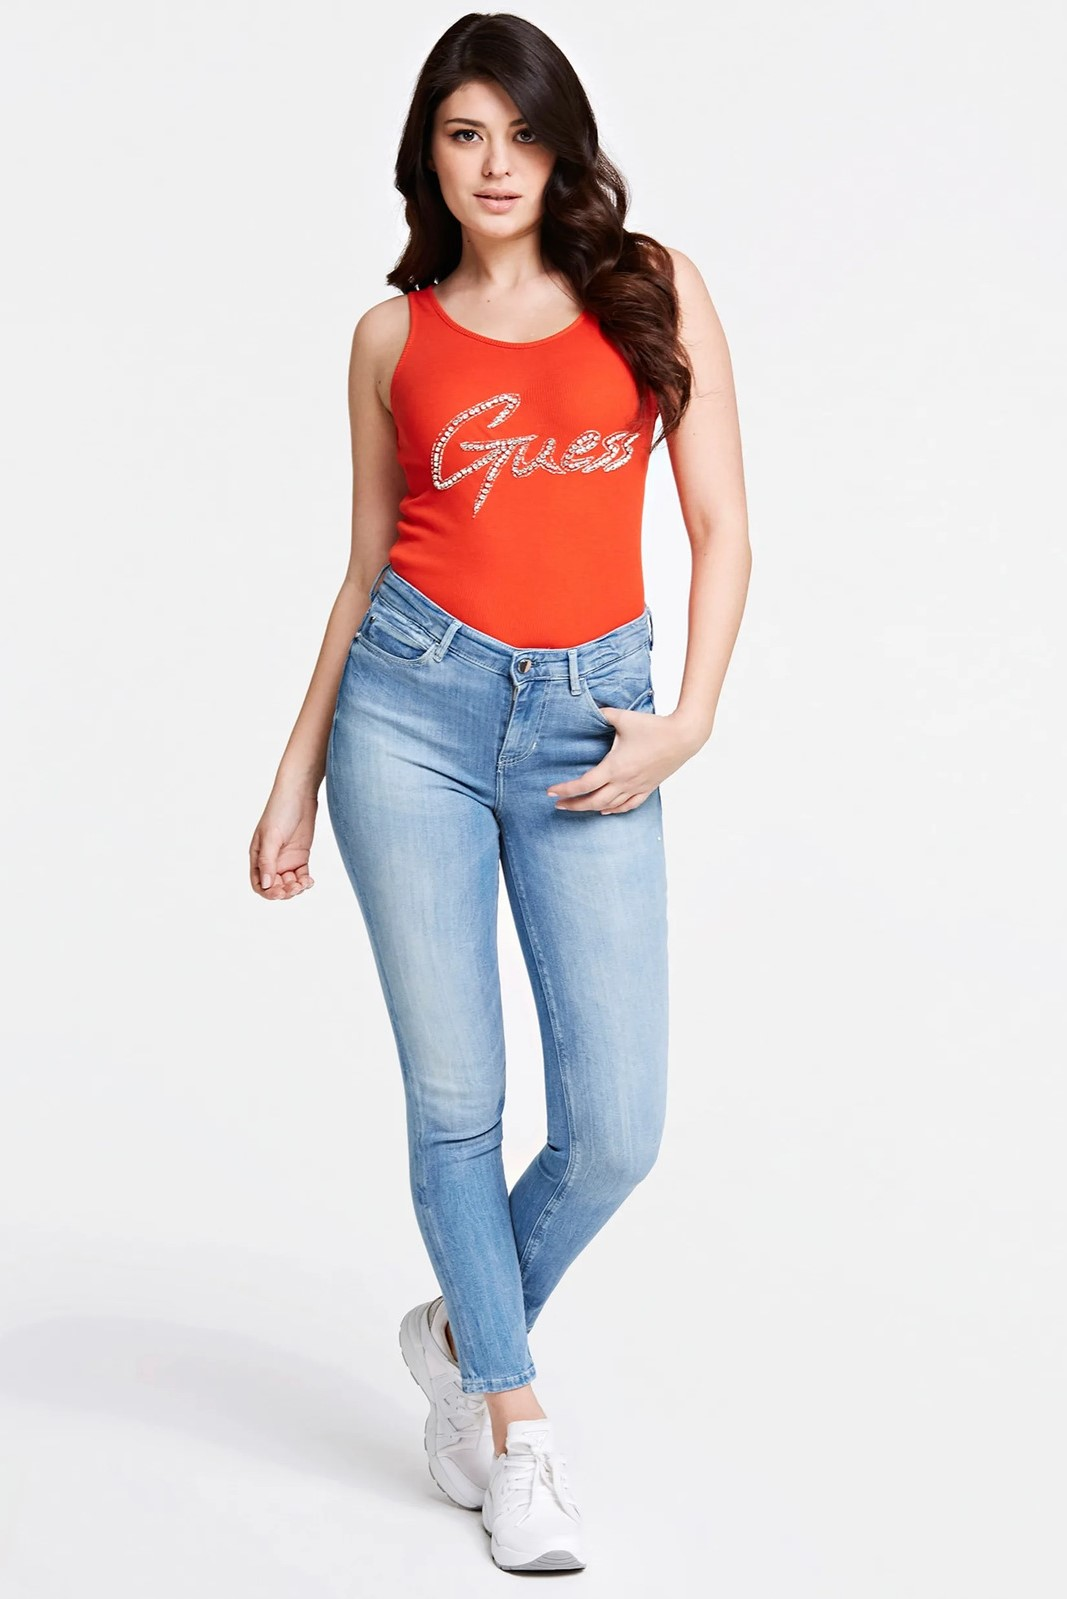 Guess red top Front Logo Tank Top